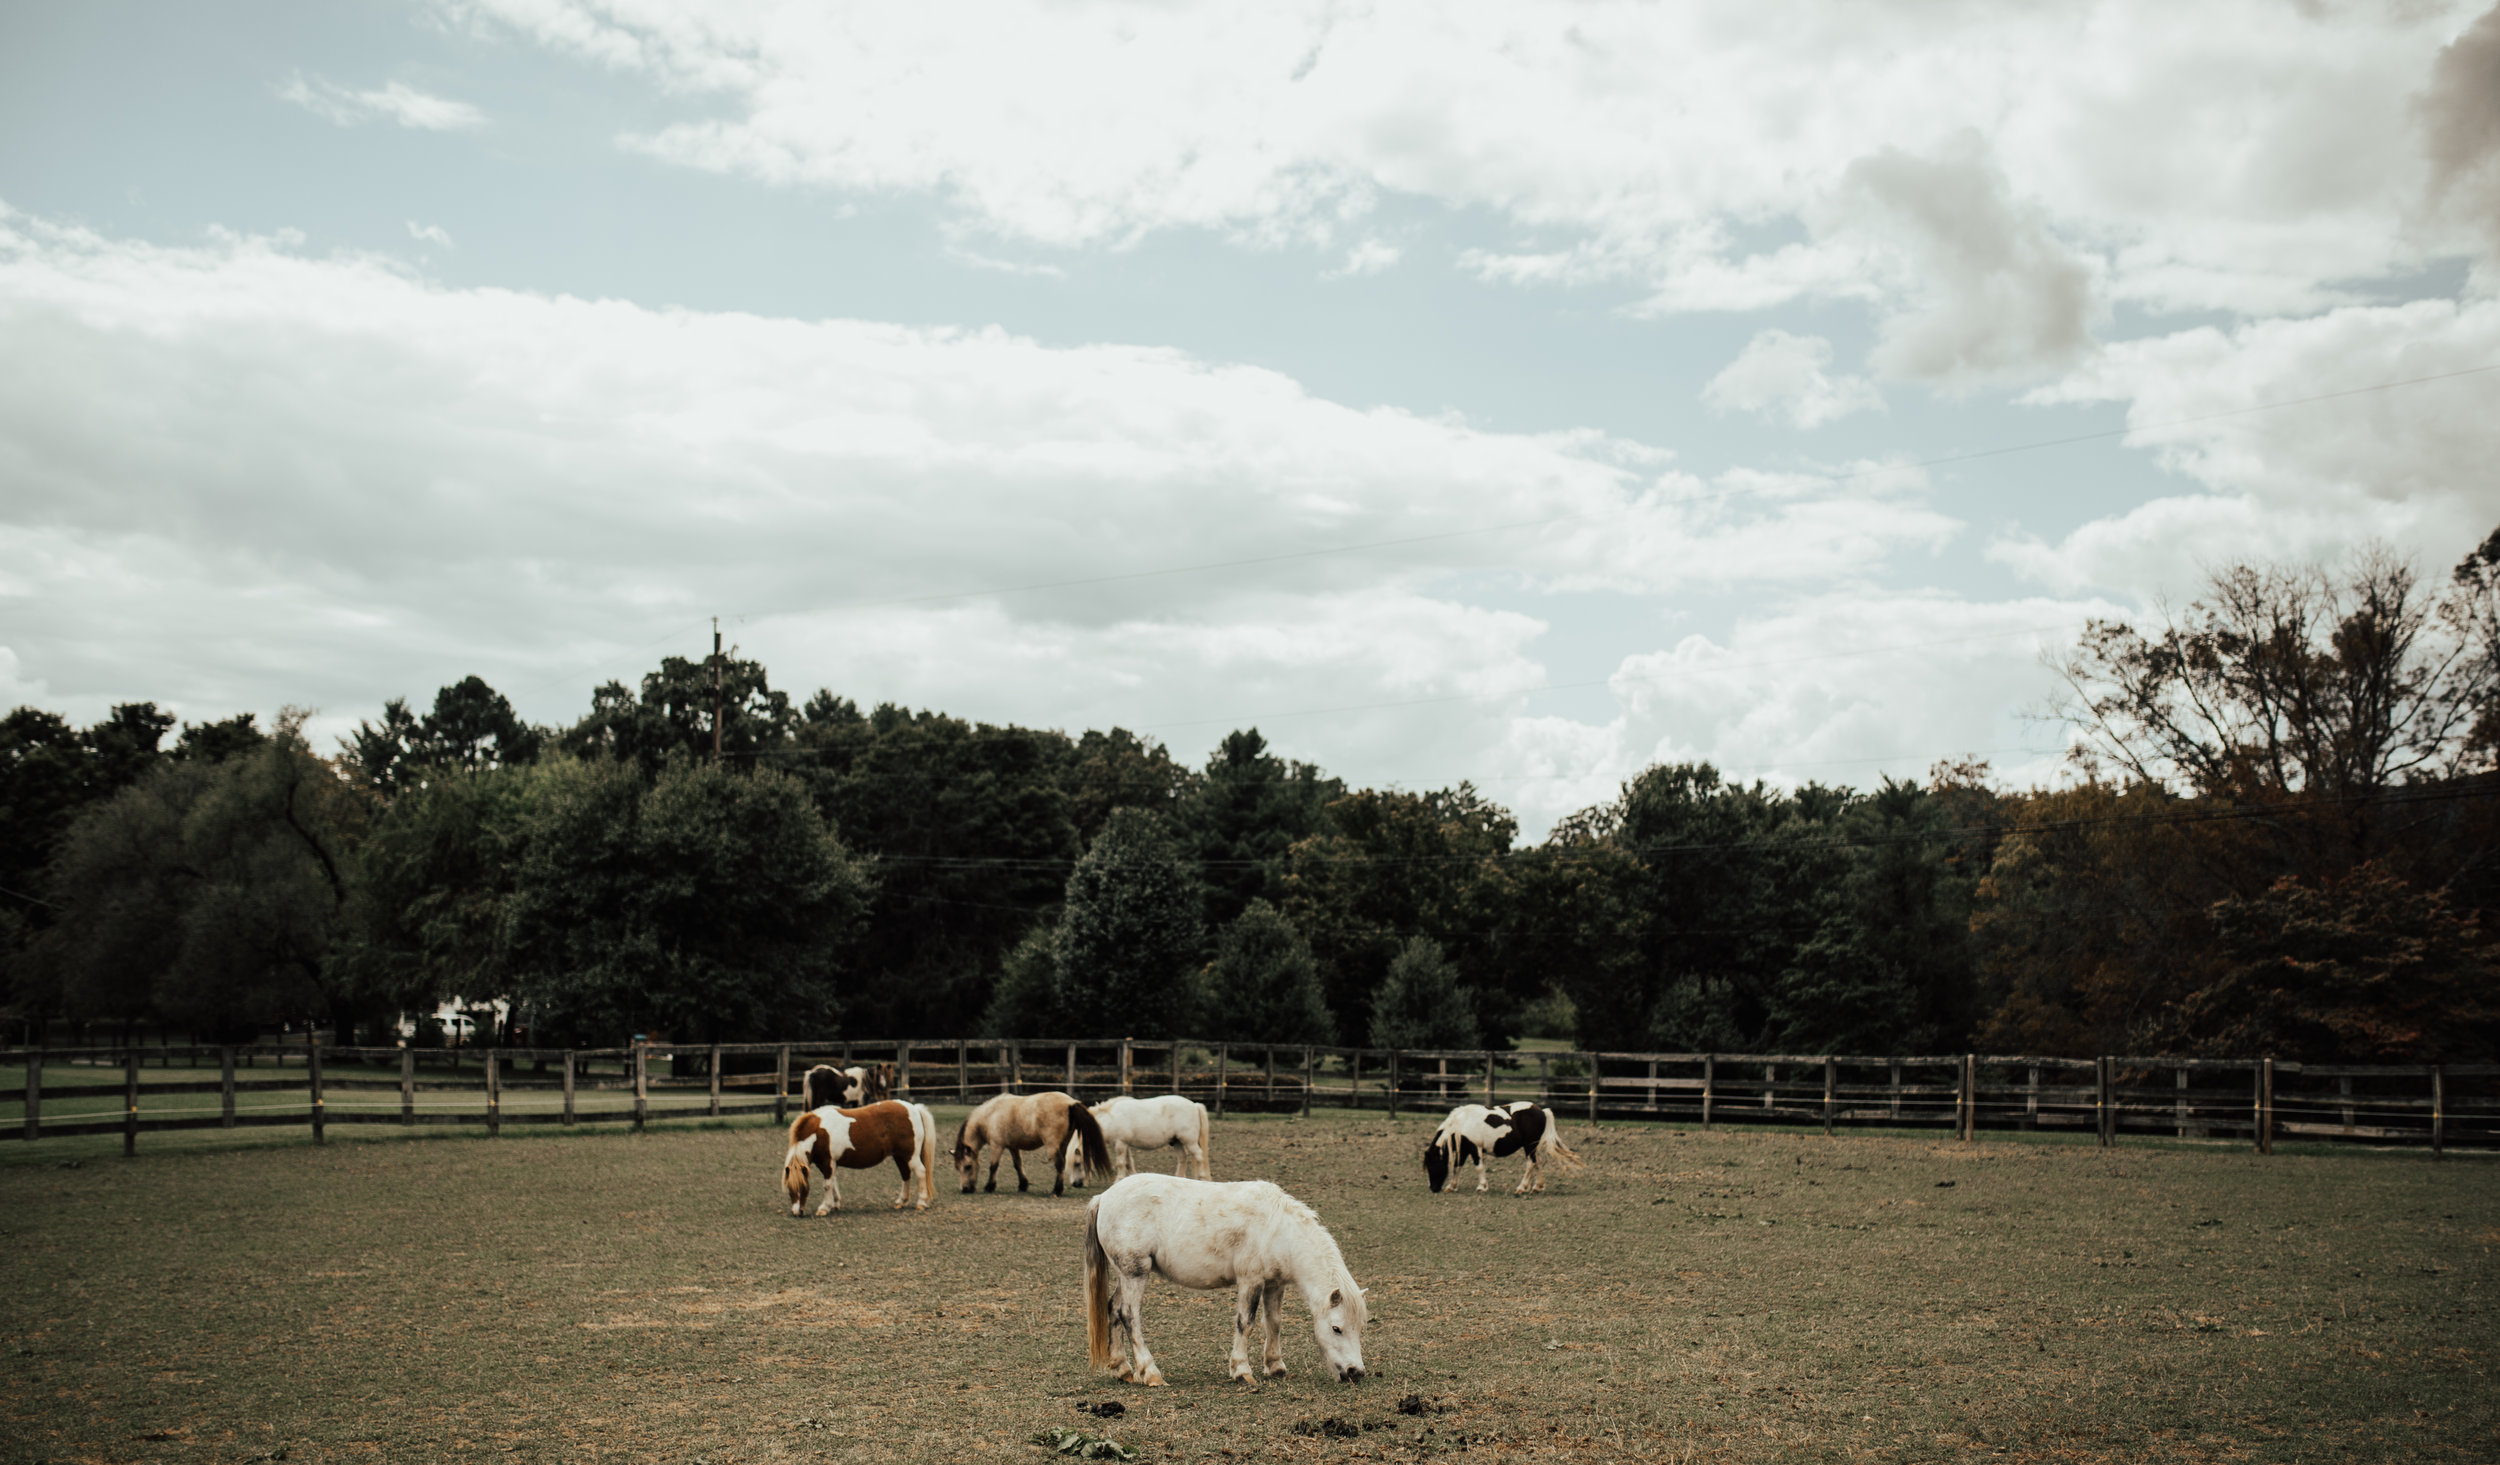 I met up with Annie and Brad at this gorgeous and quaint miniature horse farm. It was such a perfect setting to prepare for a special day.